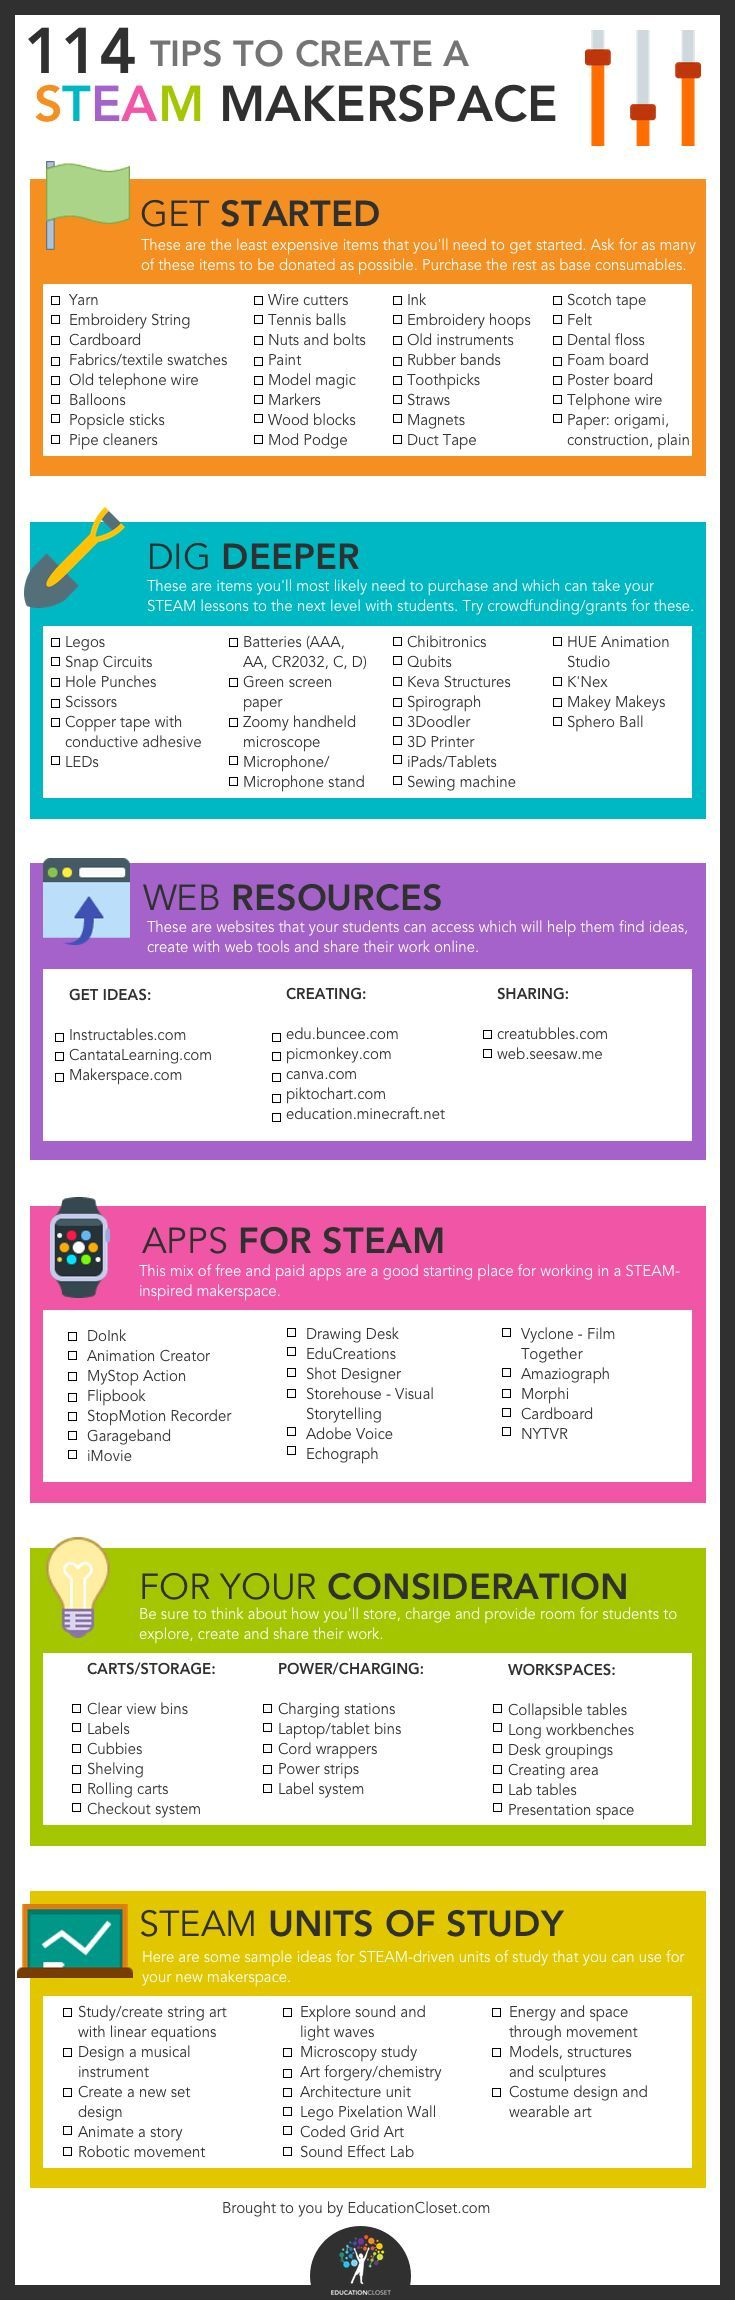 114 Tips to Create a STEAM Makerspace in Schools – Natasha Collens